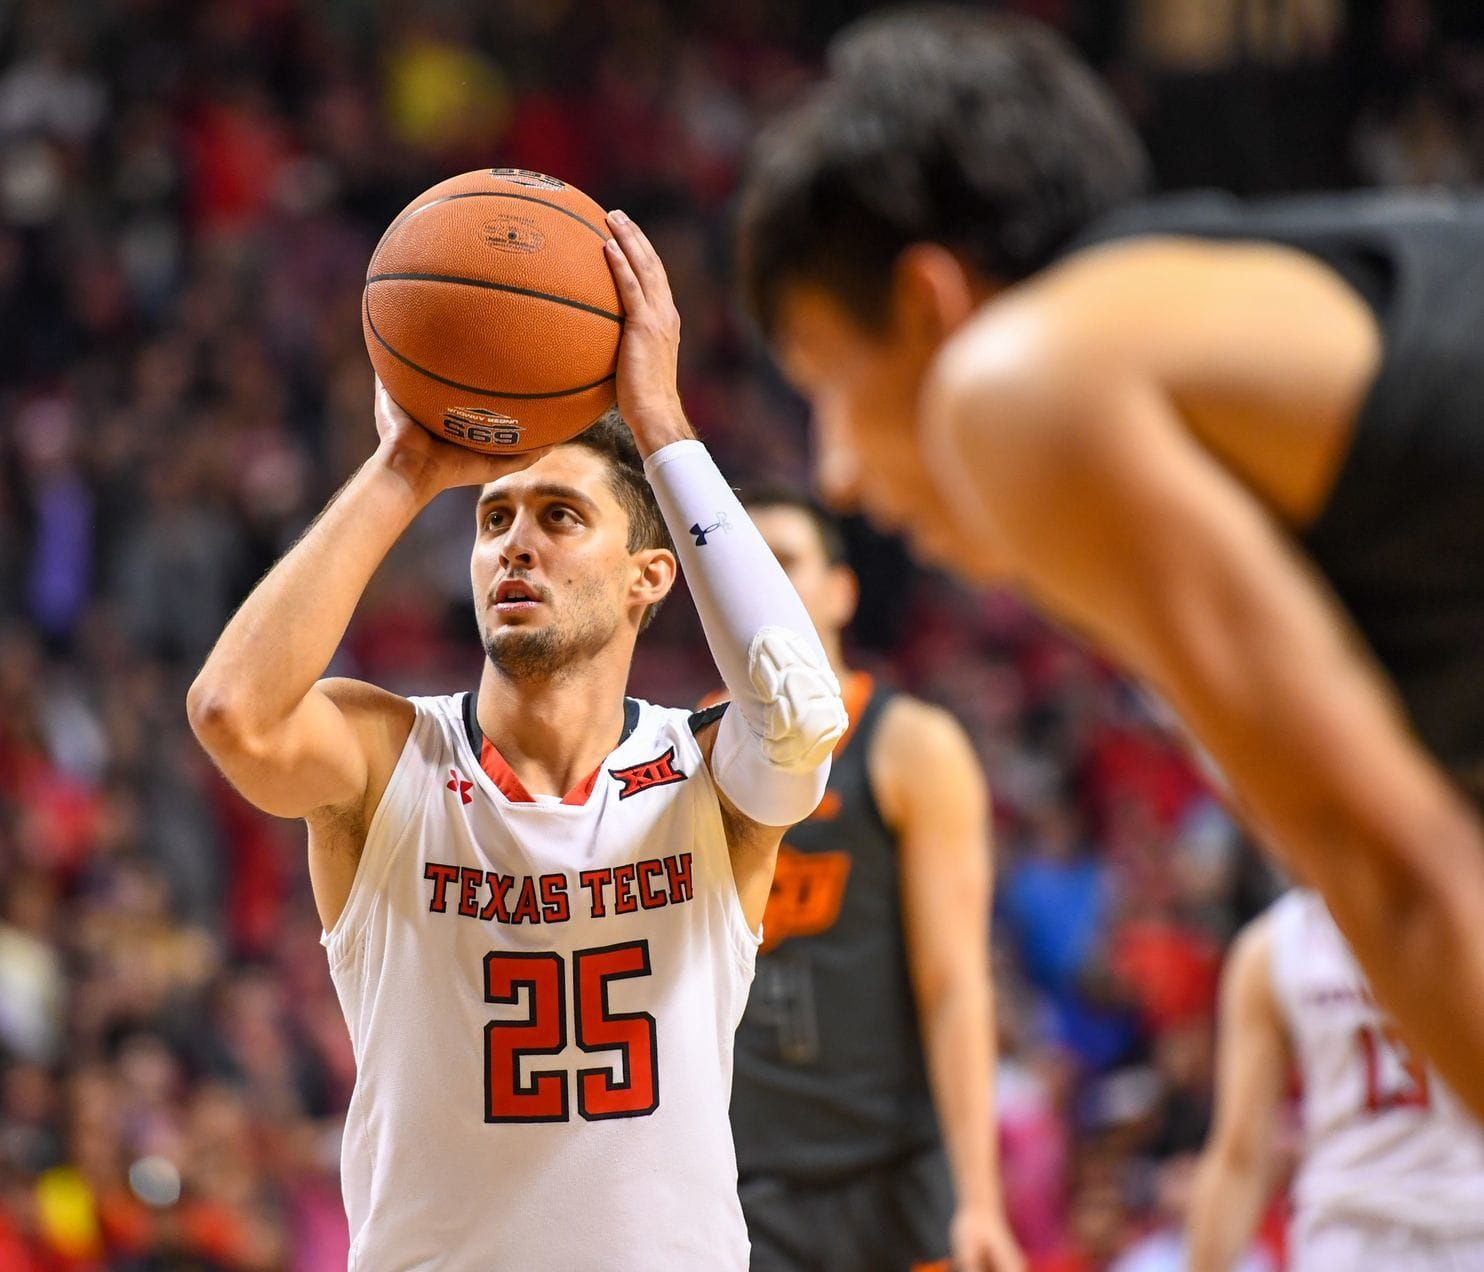 Five NCAA tournament players who could breakout